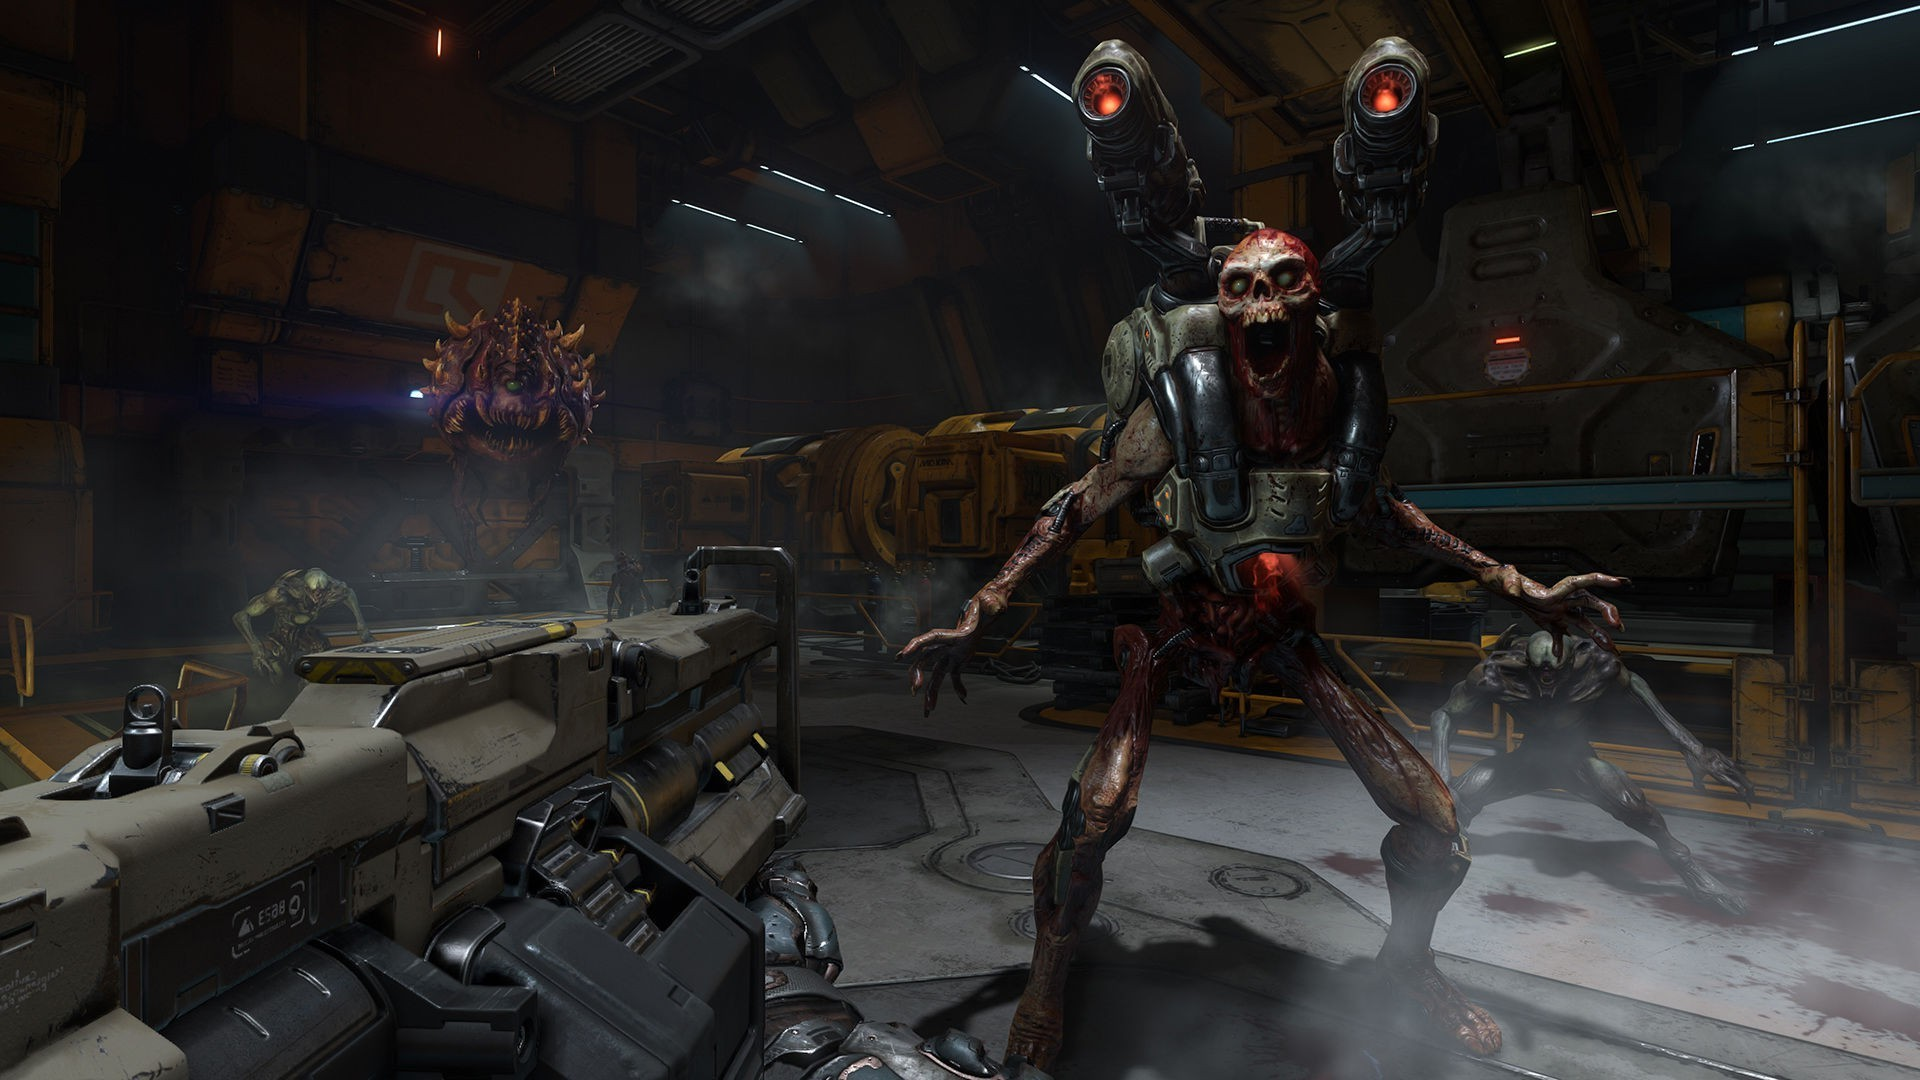 Res: 1920x1080, Doom (game), Doom 4, Id Software, Video Games, Shooter, First person  Shooter Wallpapers HD / Desktop and Mobile Backgrounds